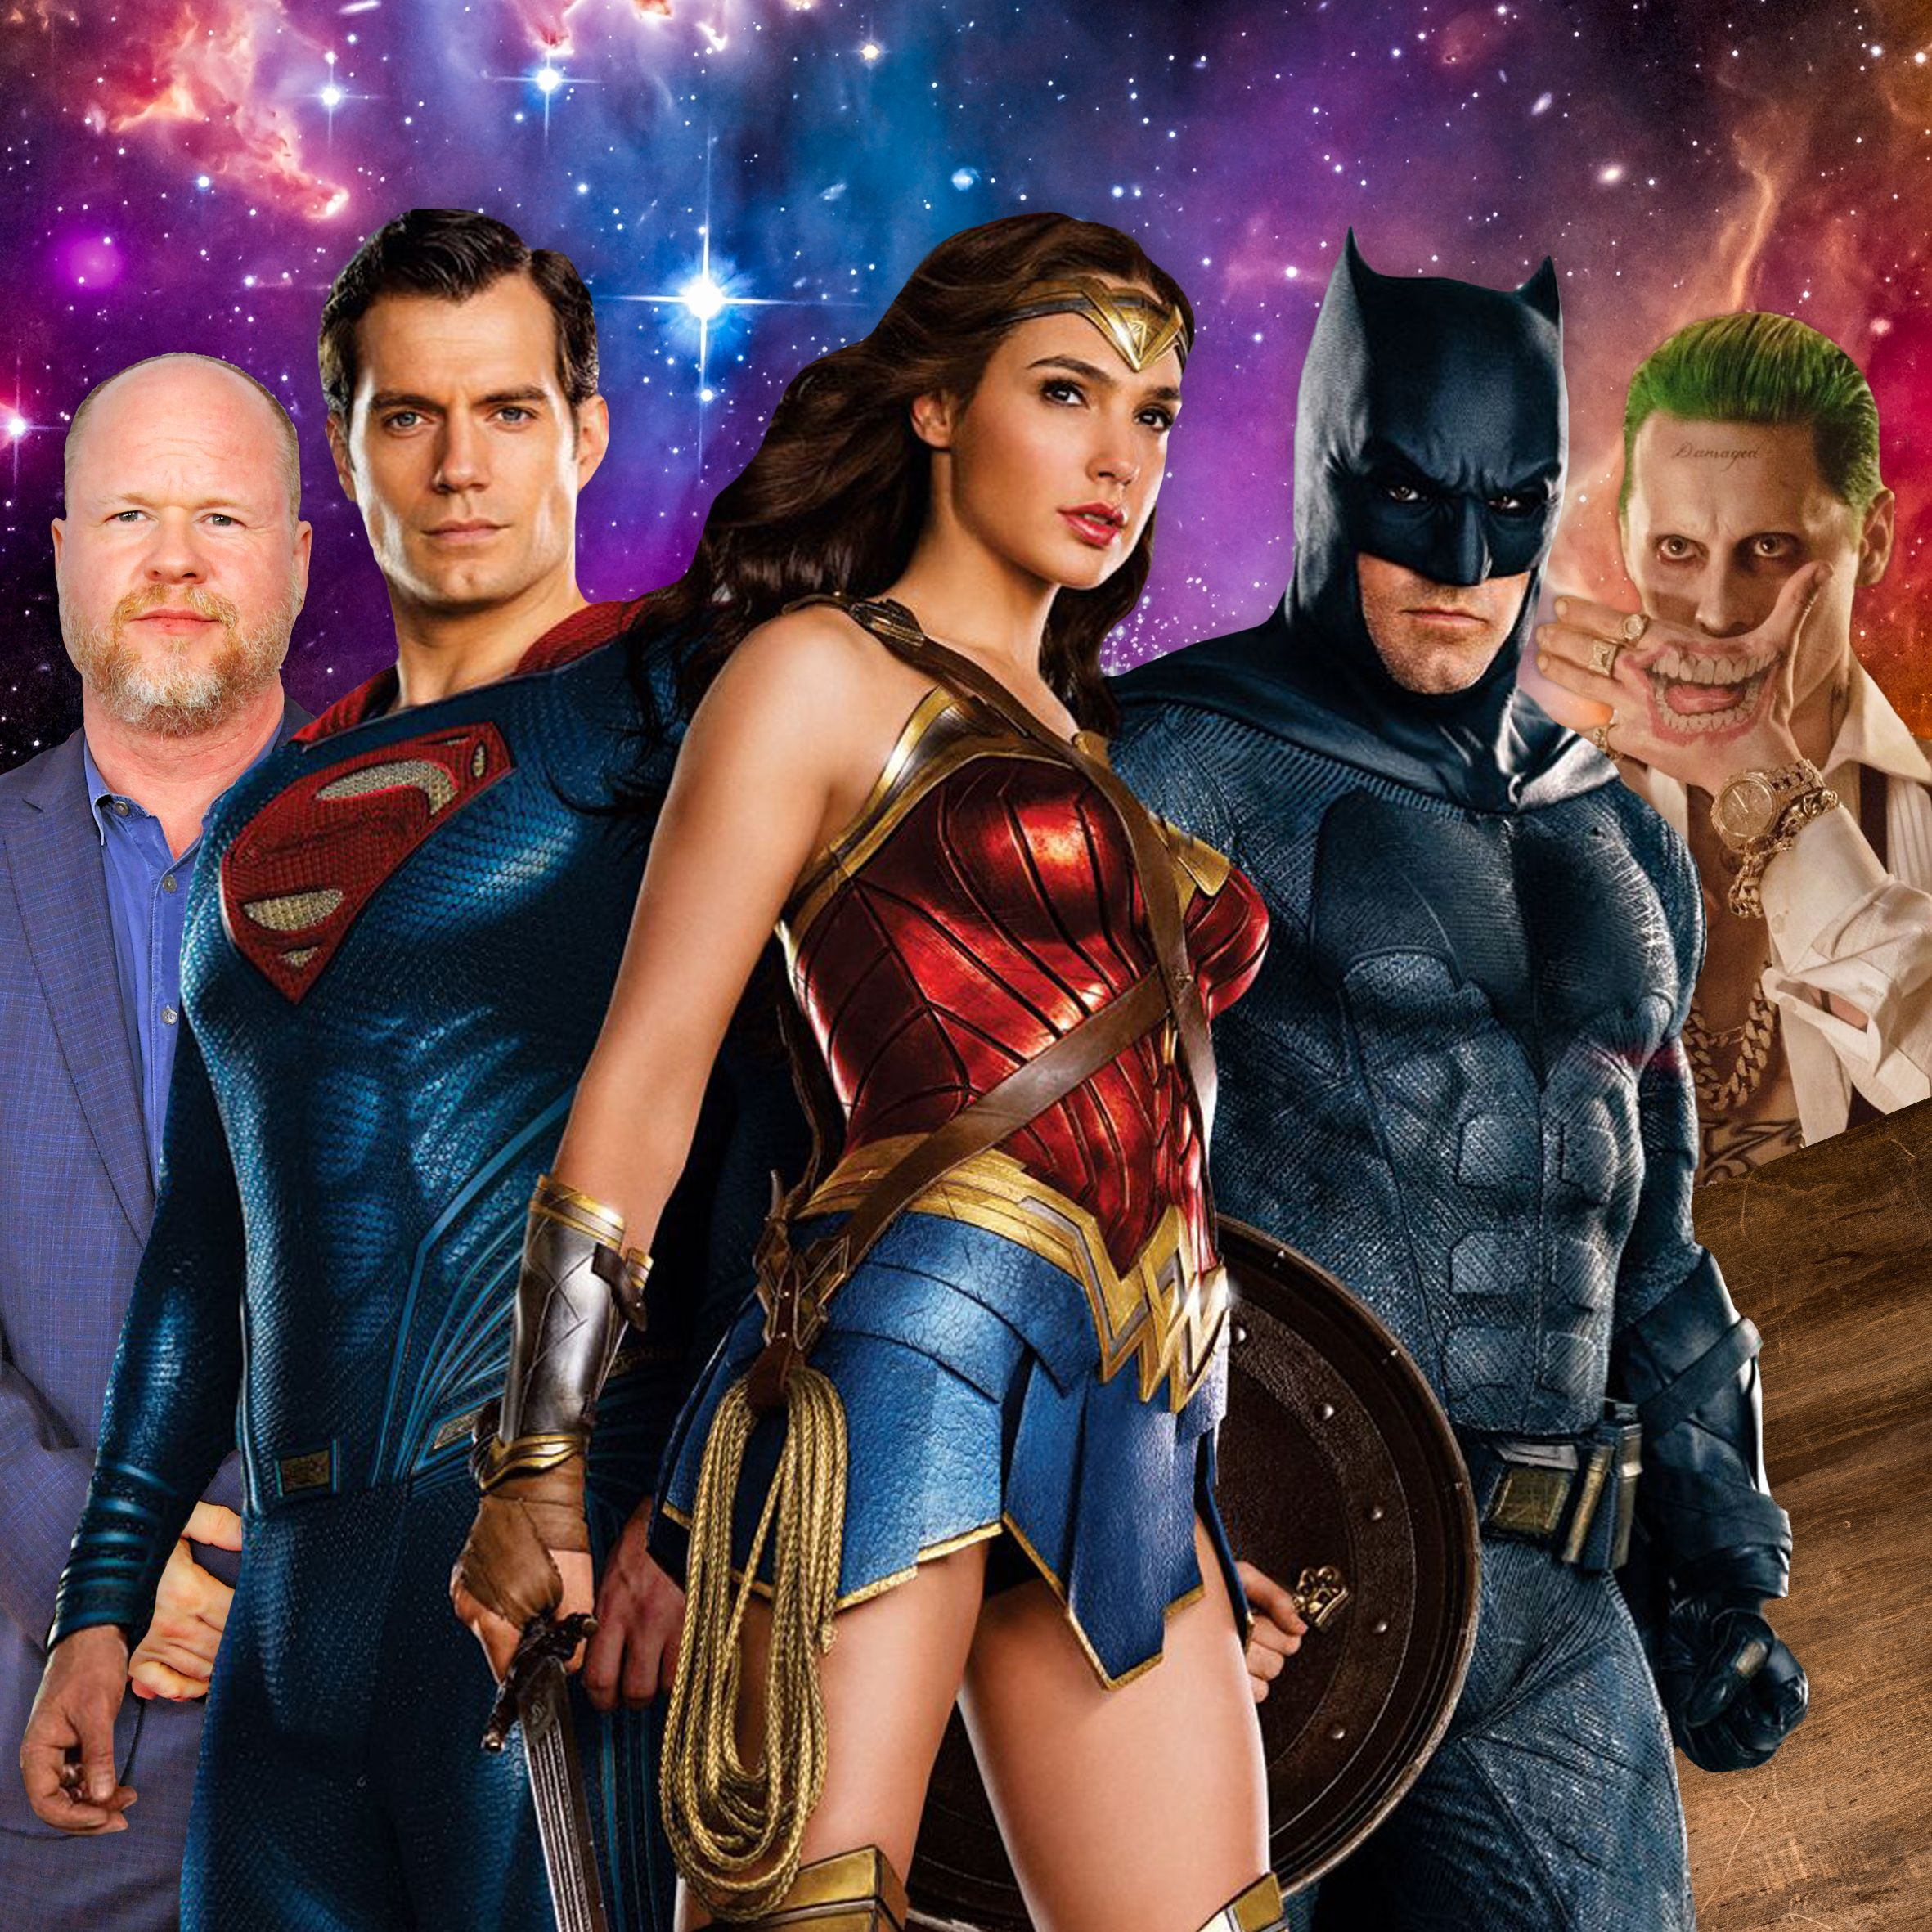 DC's biggest movie mistakes, according to DC and Warner Bros